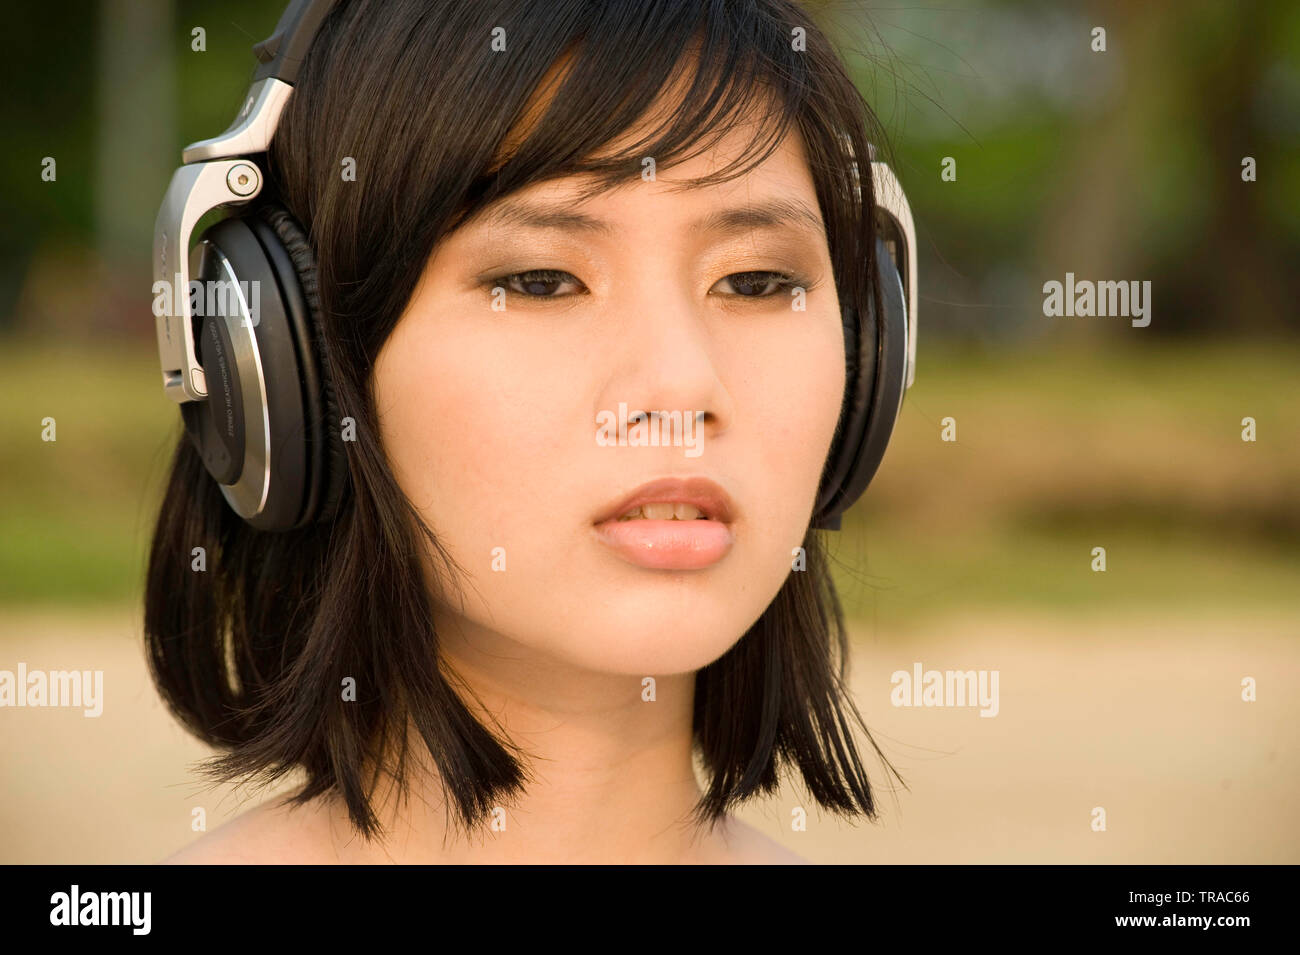 Portrait of a cool modern young Asian woman wearing big headphones listening to music - Stock Image